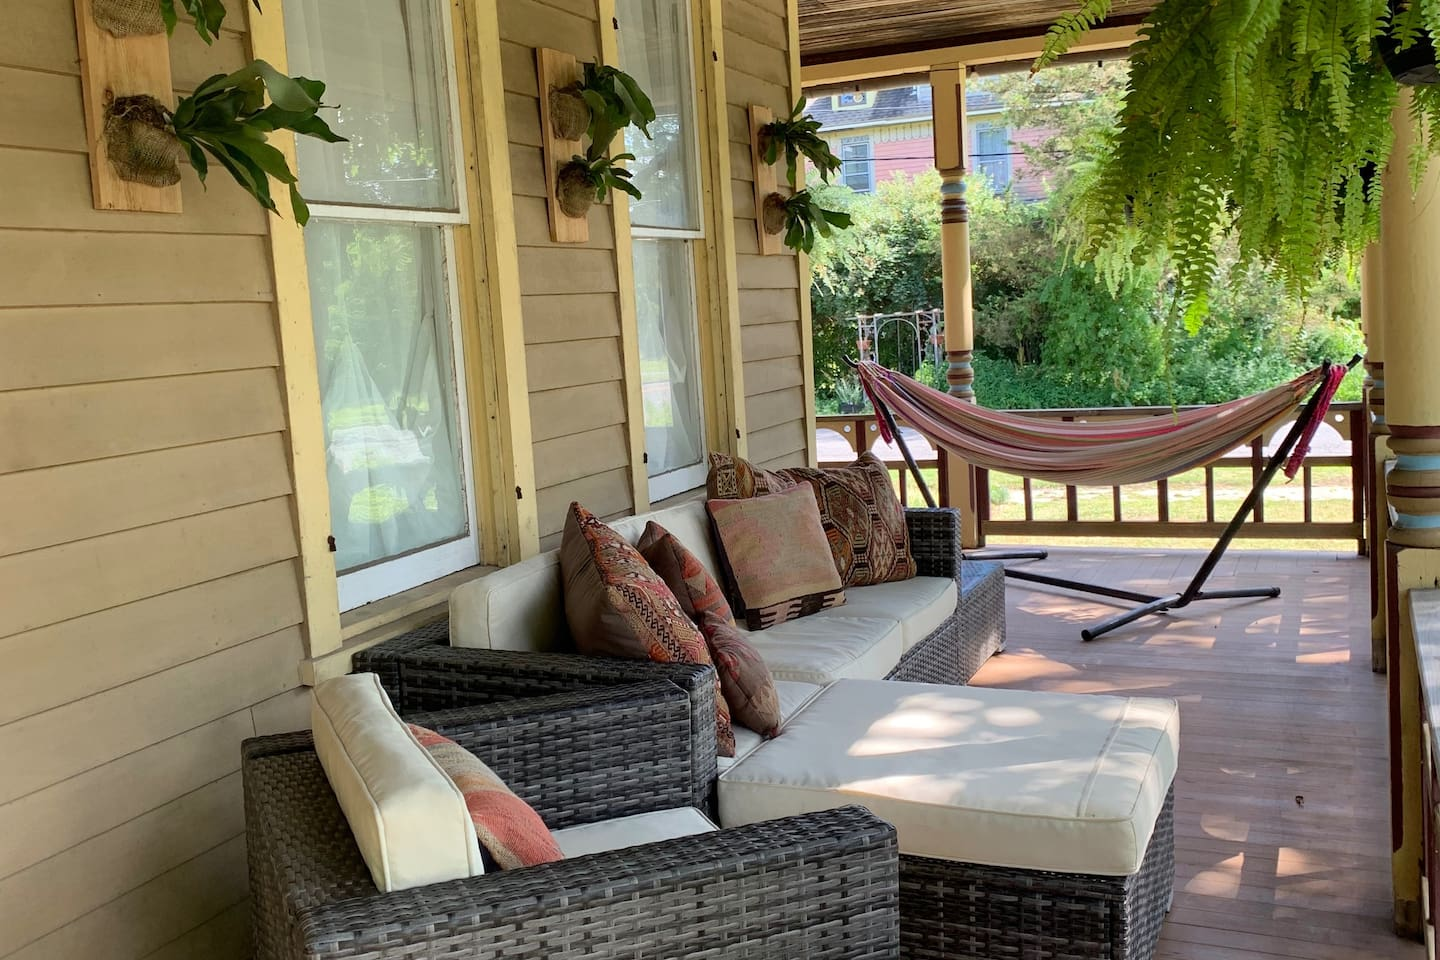 Lounge on the wrap around porch